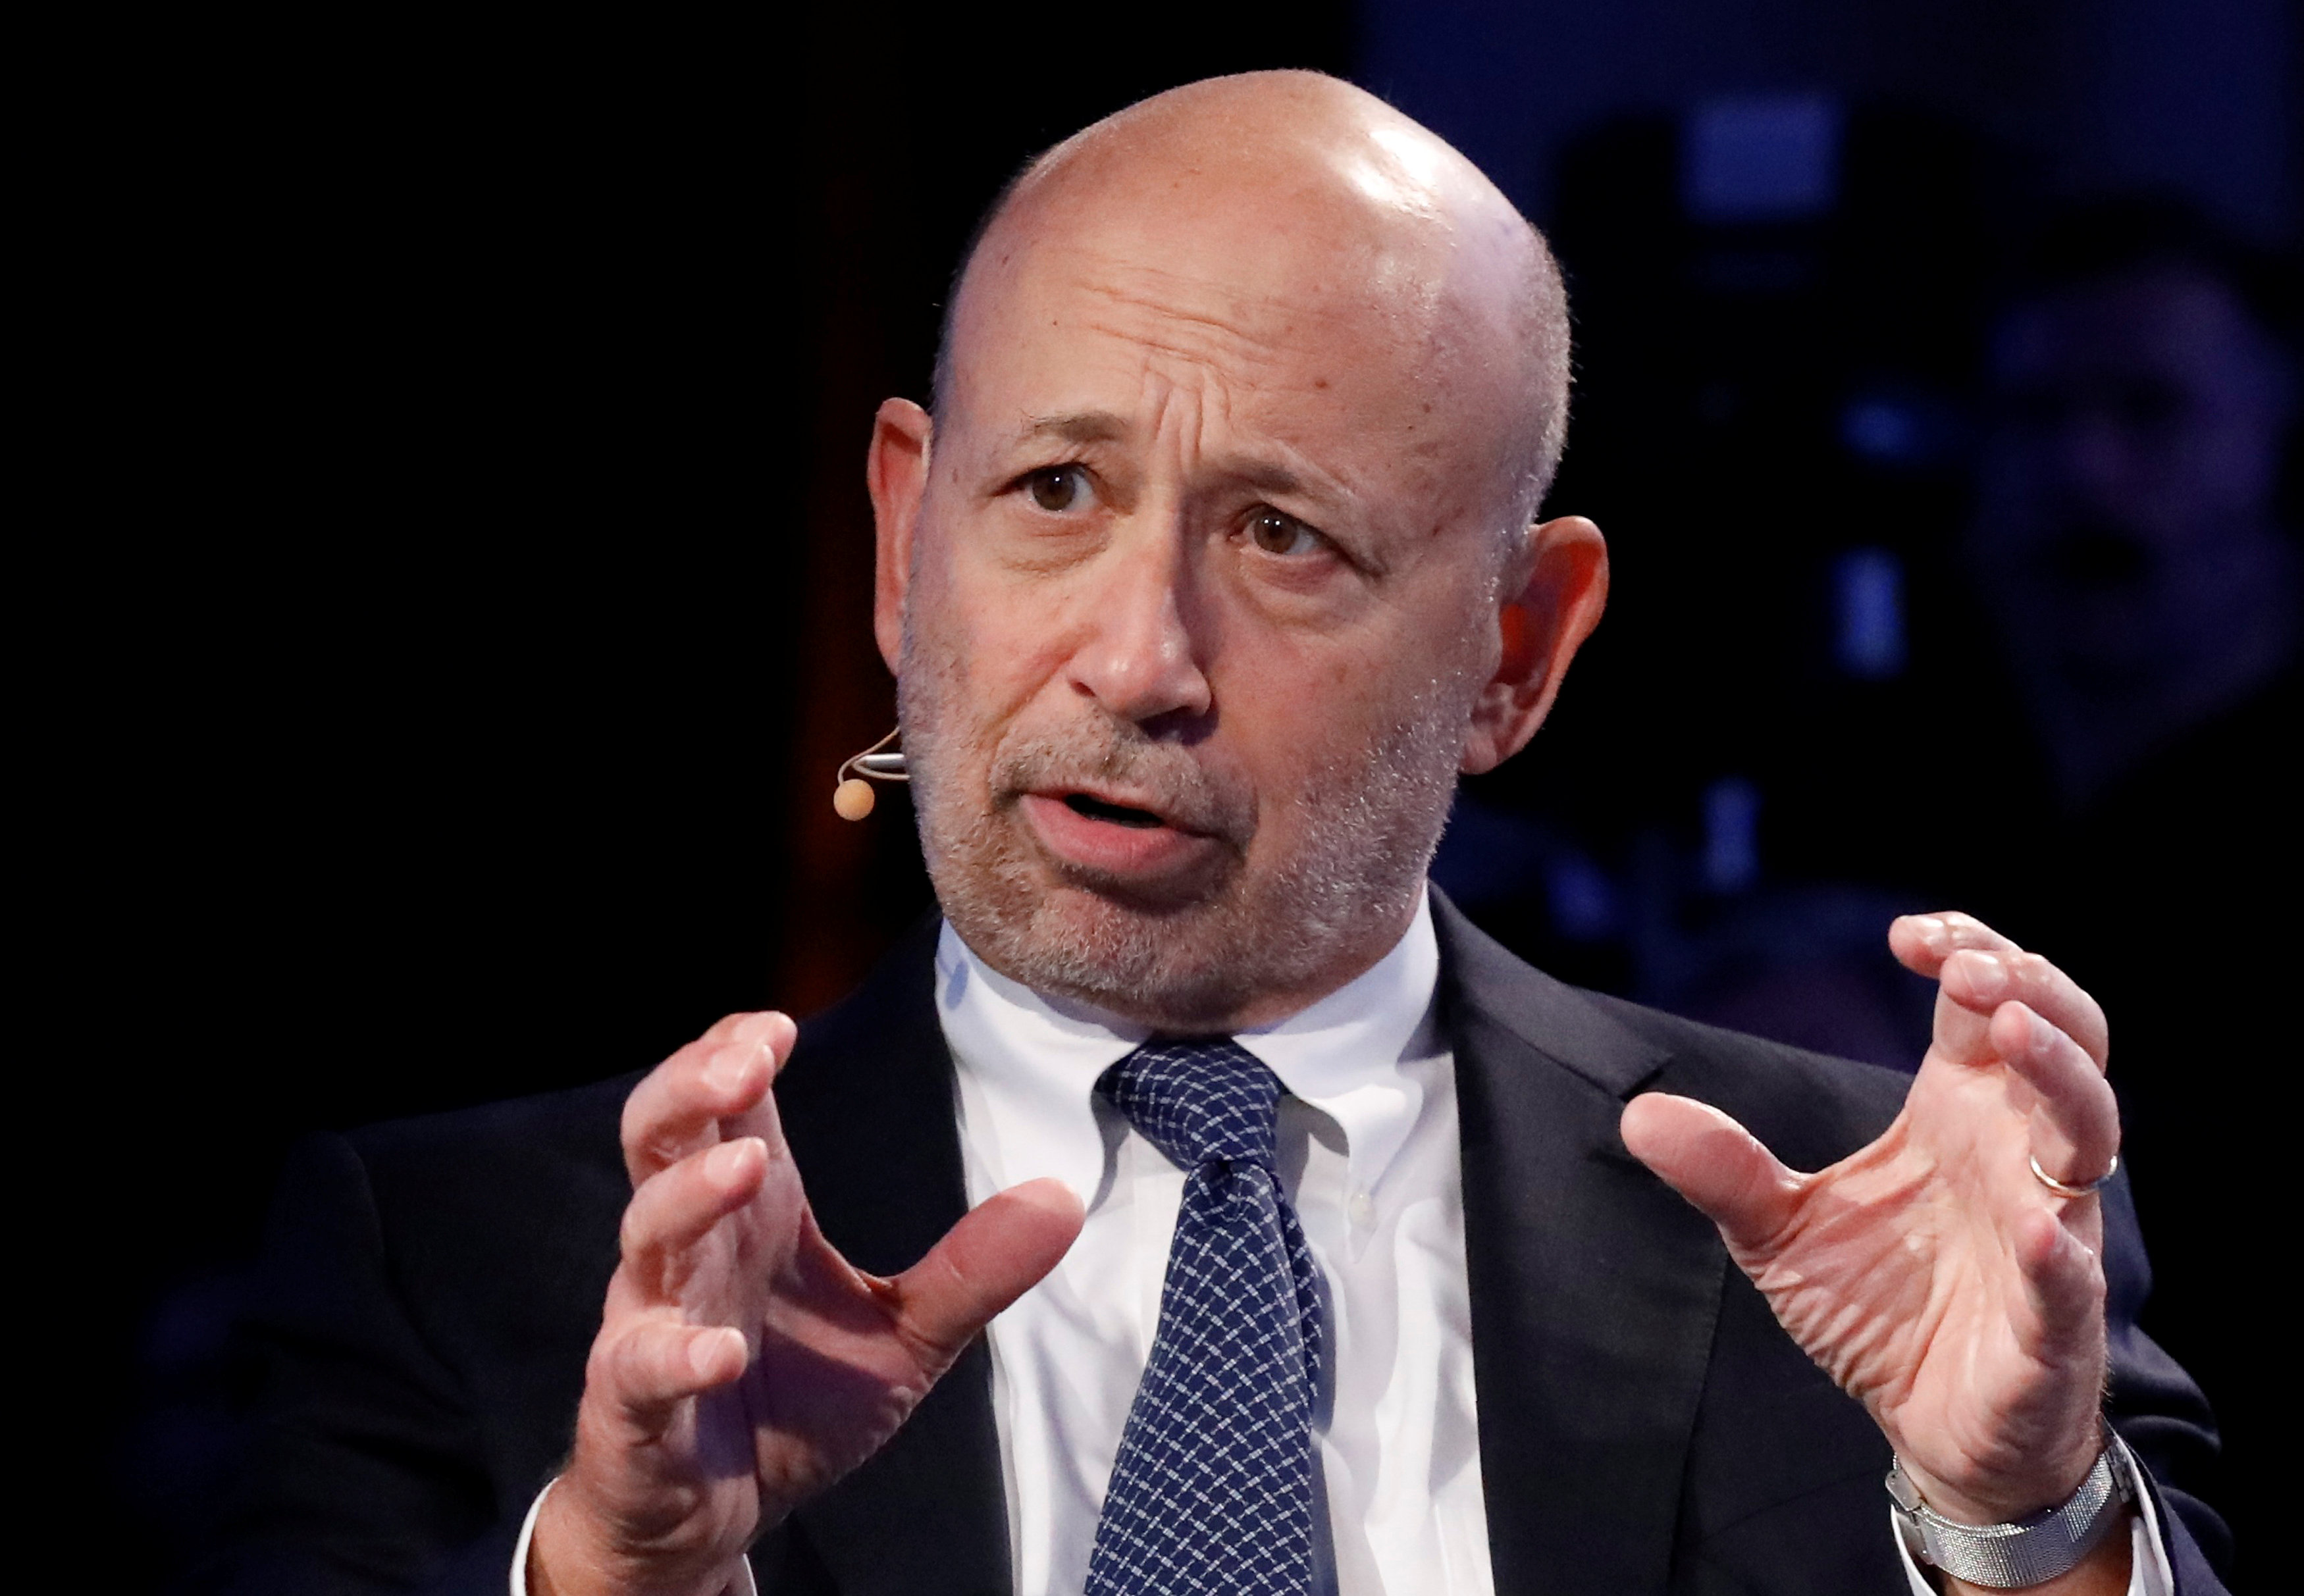 Goldman CEO Blankfein likely to step down by December: NYT